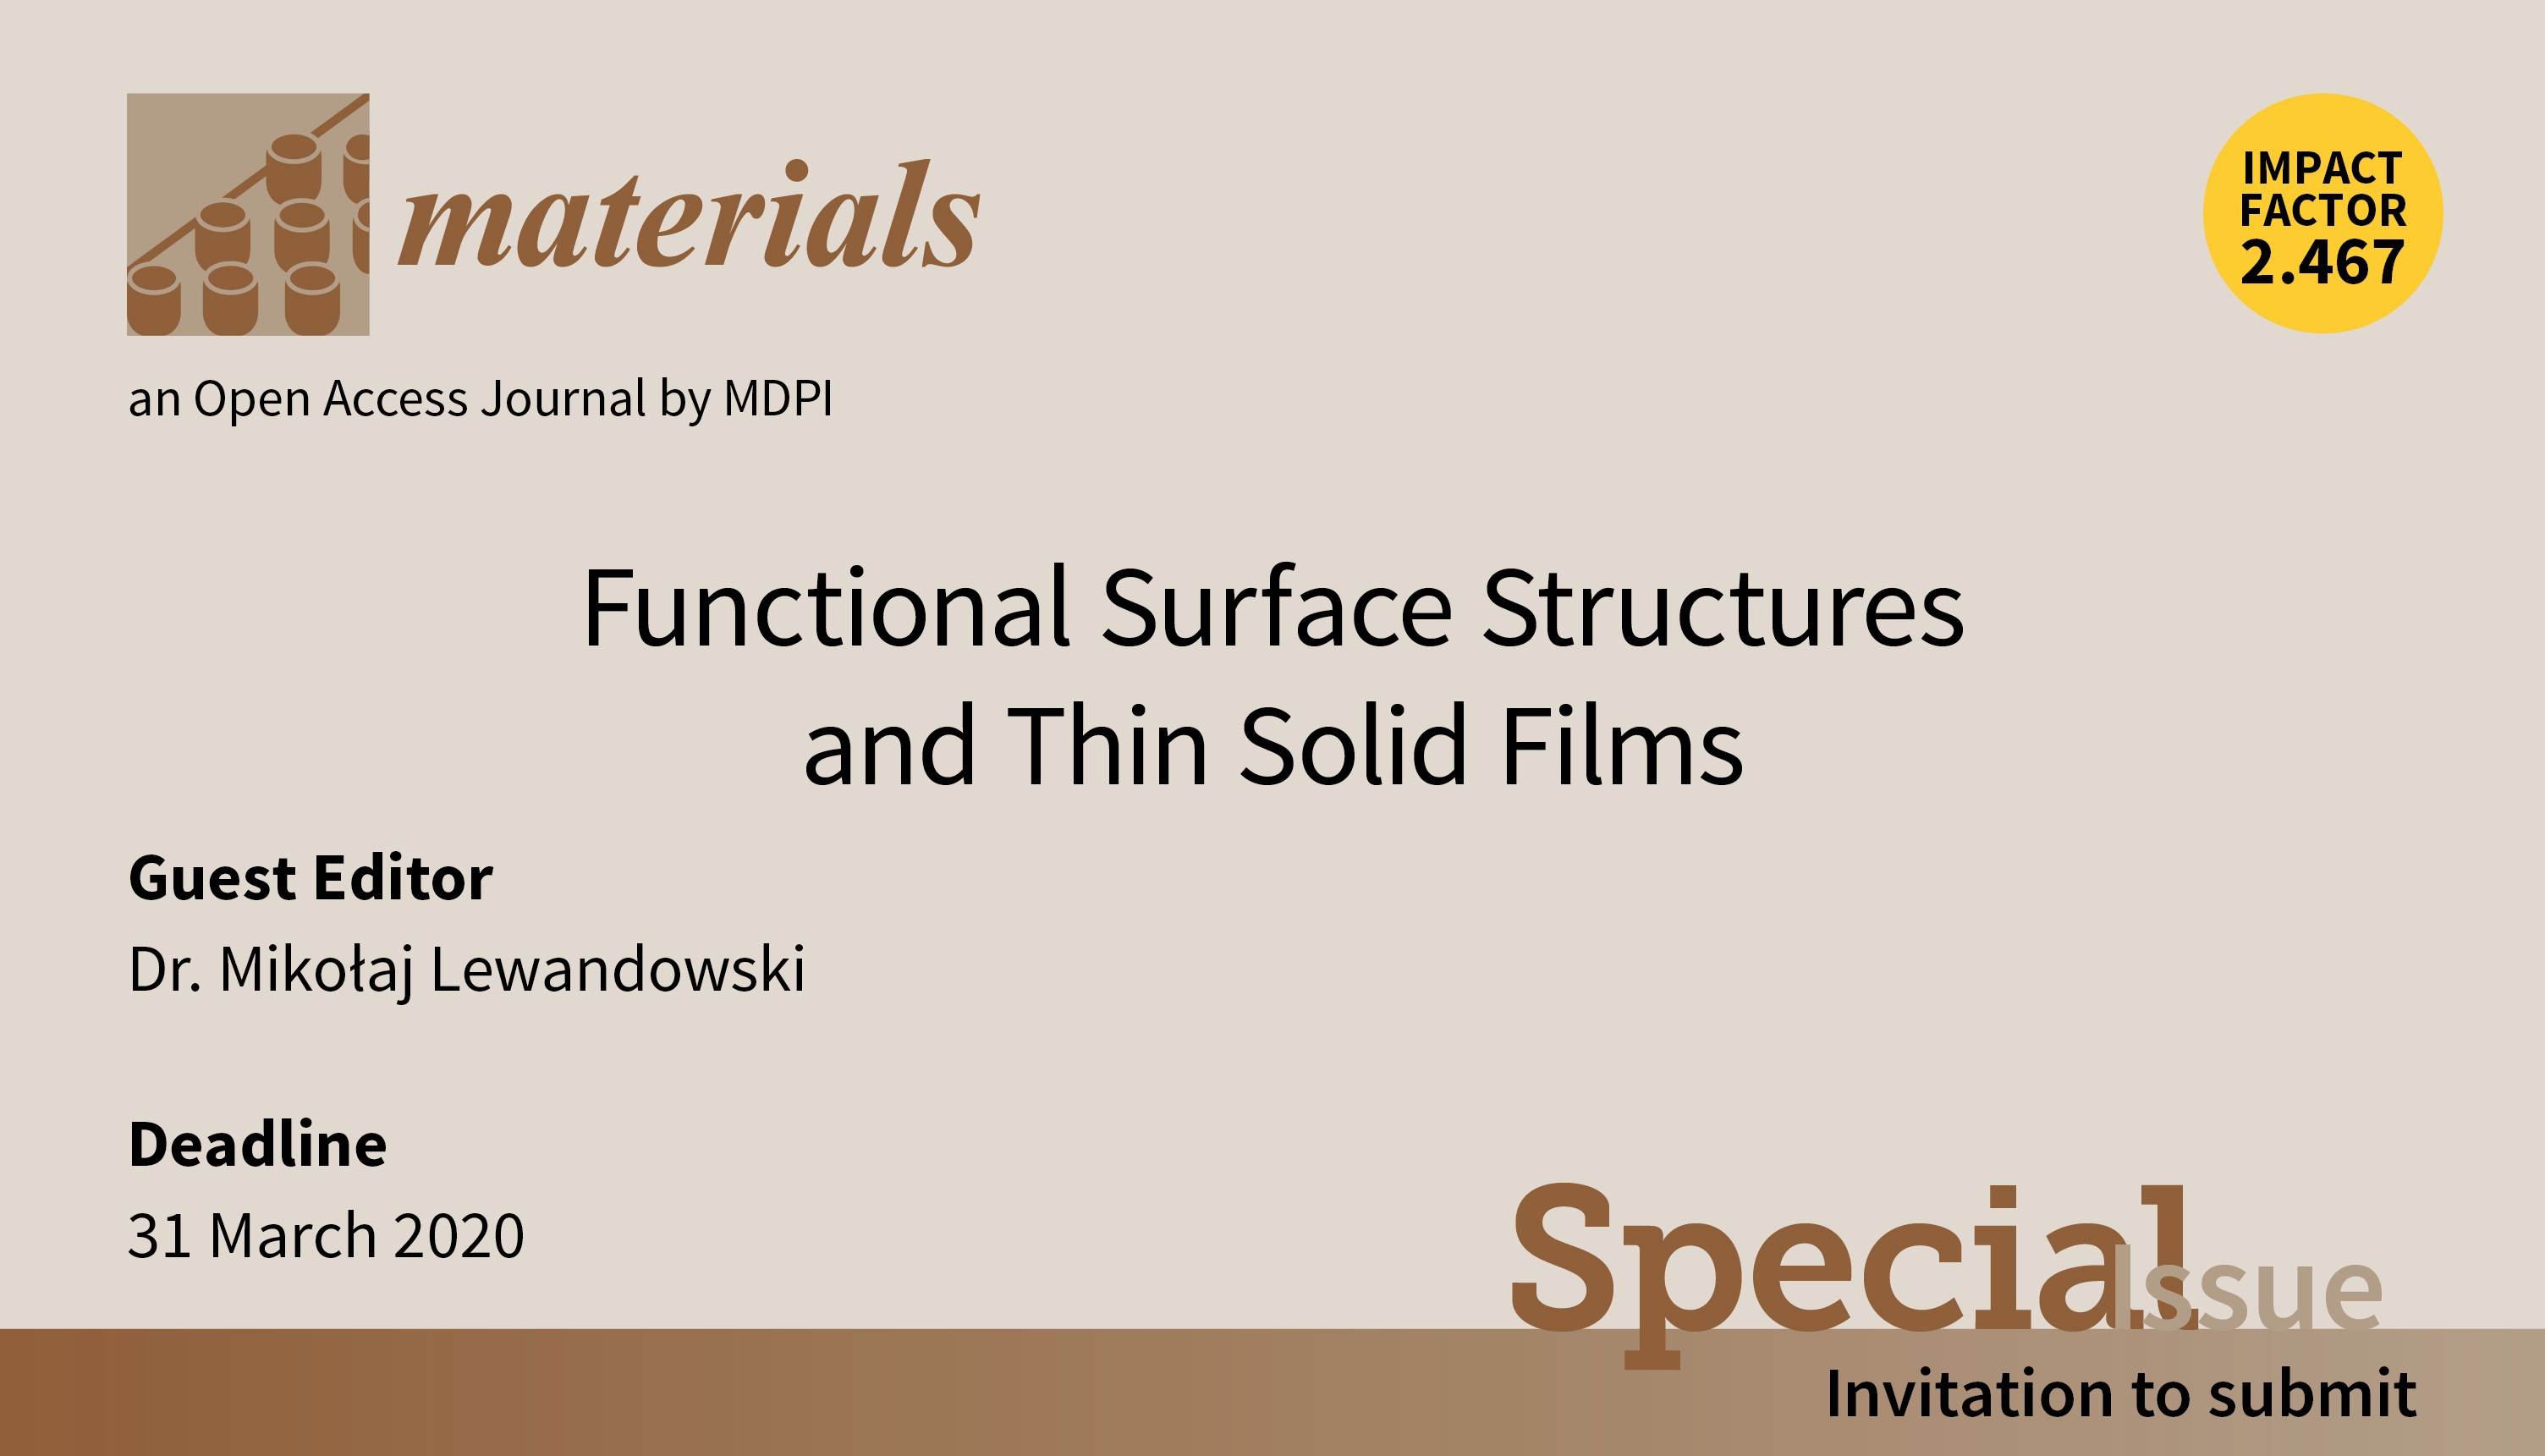 Materials Special Issue